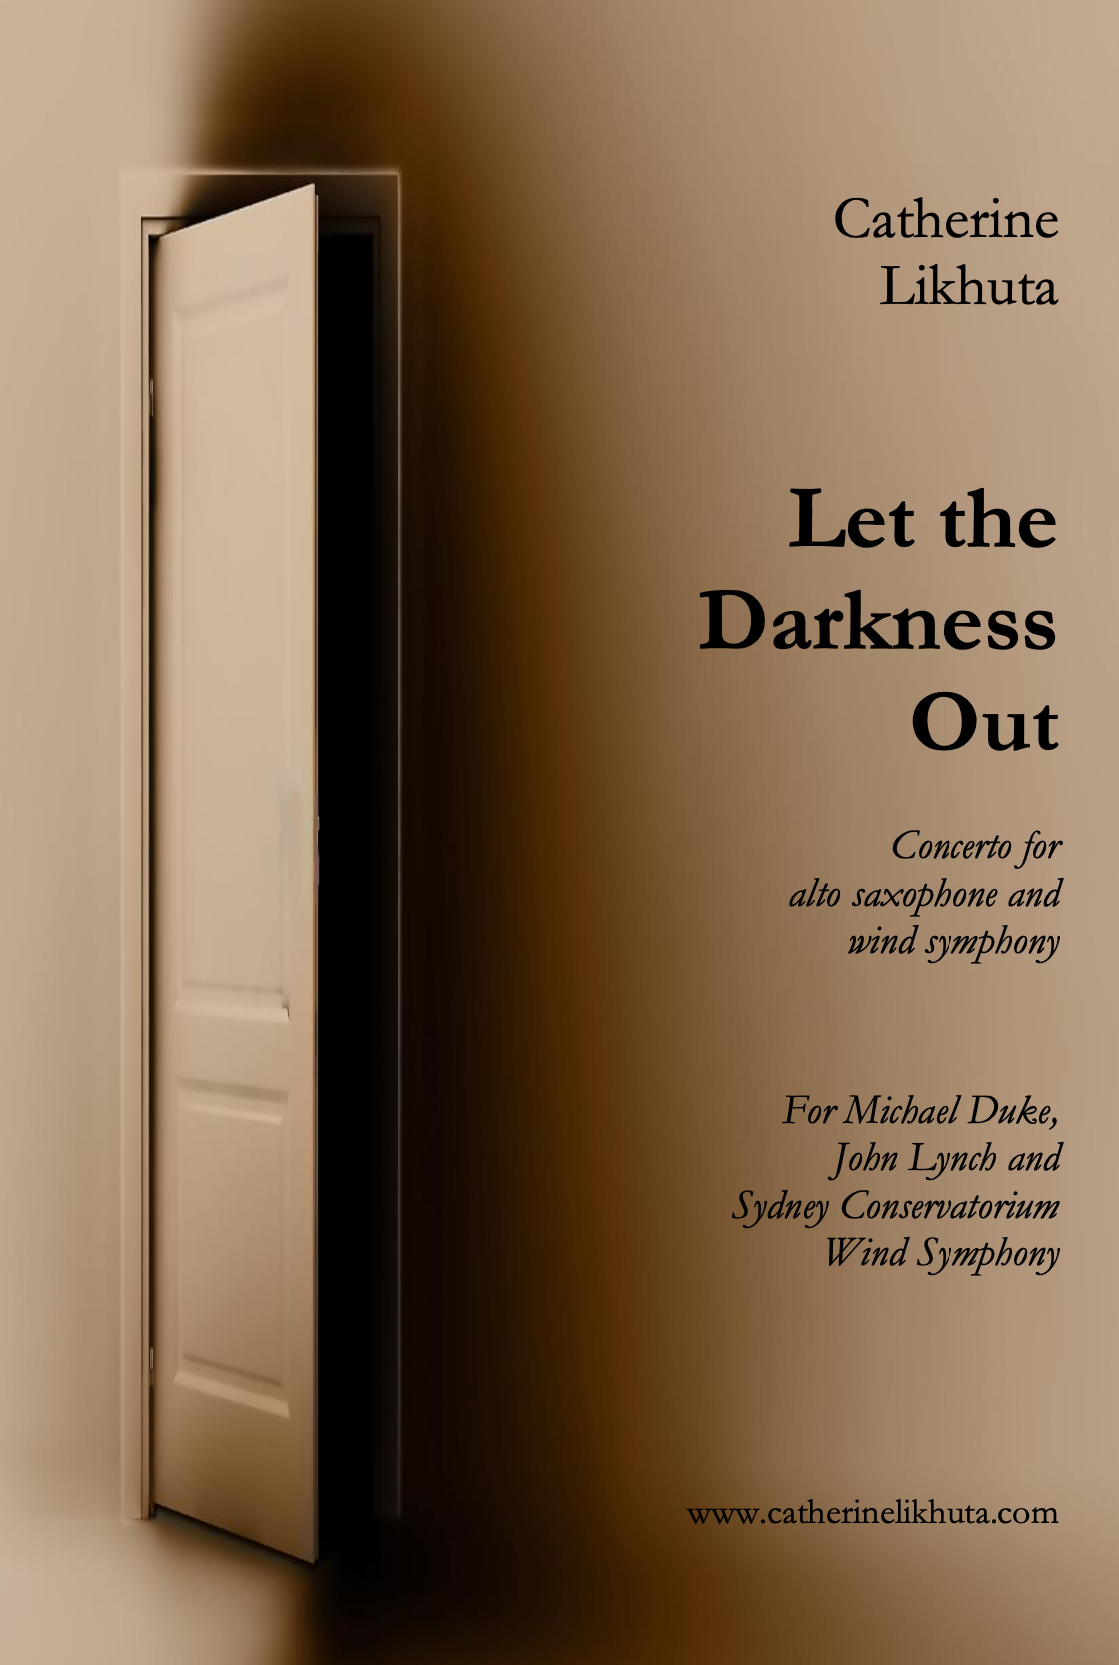 Let The Darkness Out (Full Concerto) by Catherine Likhuta